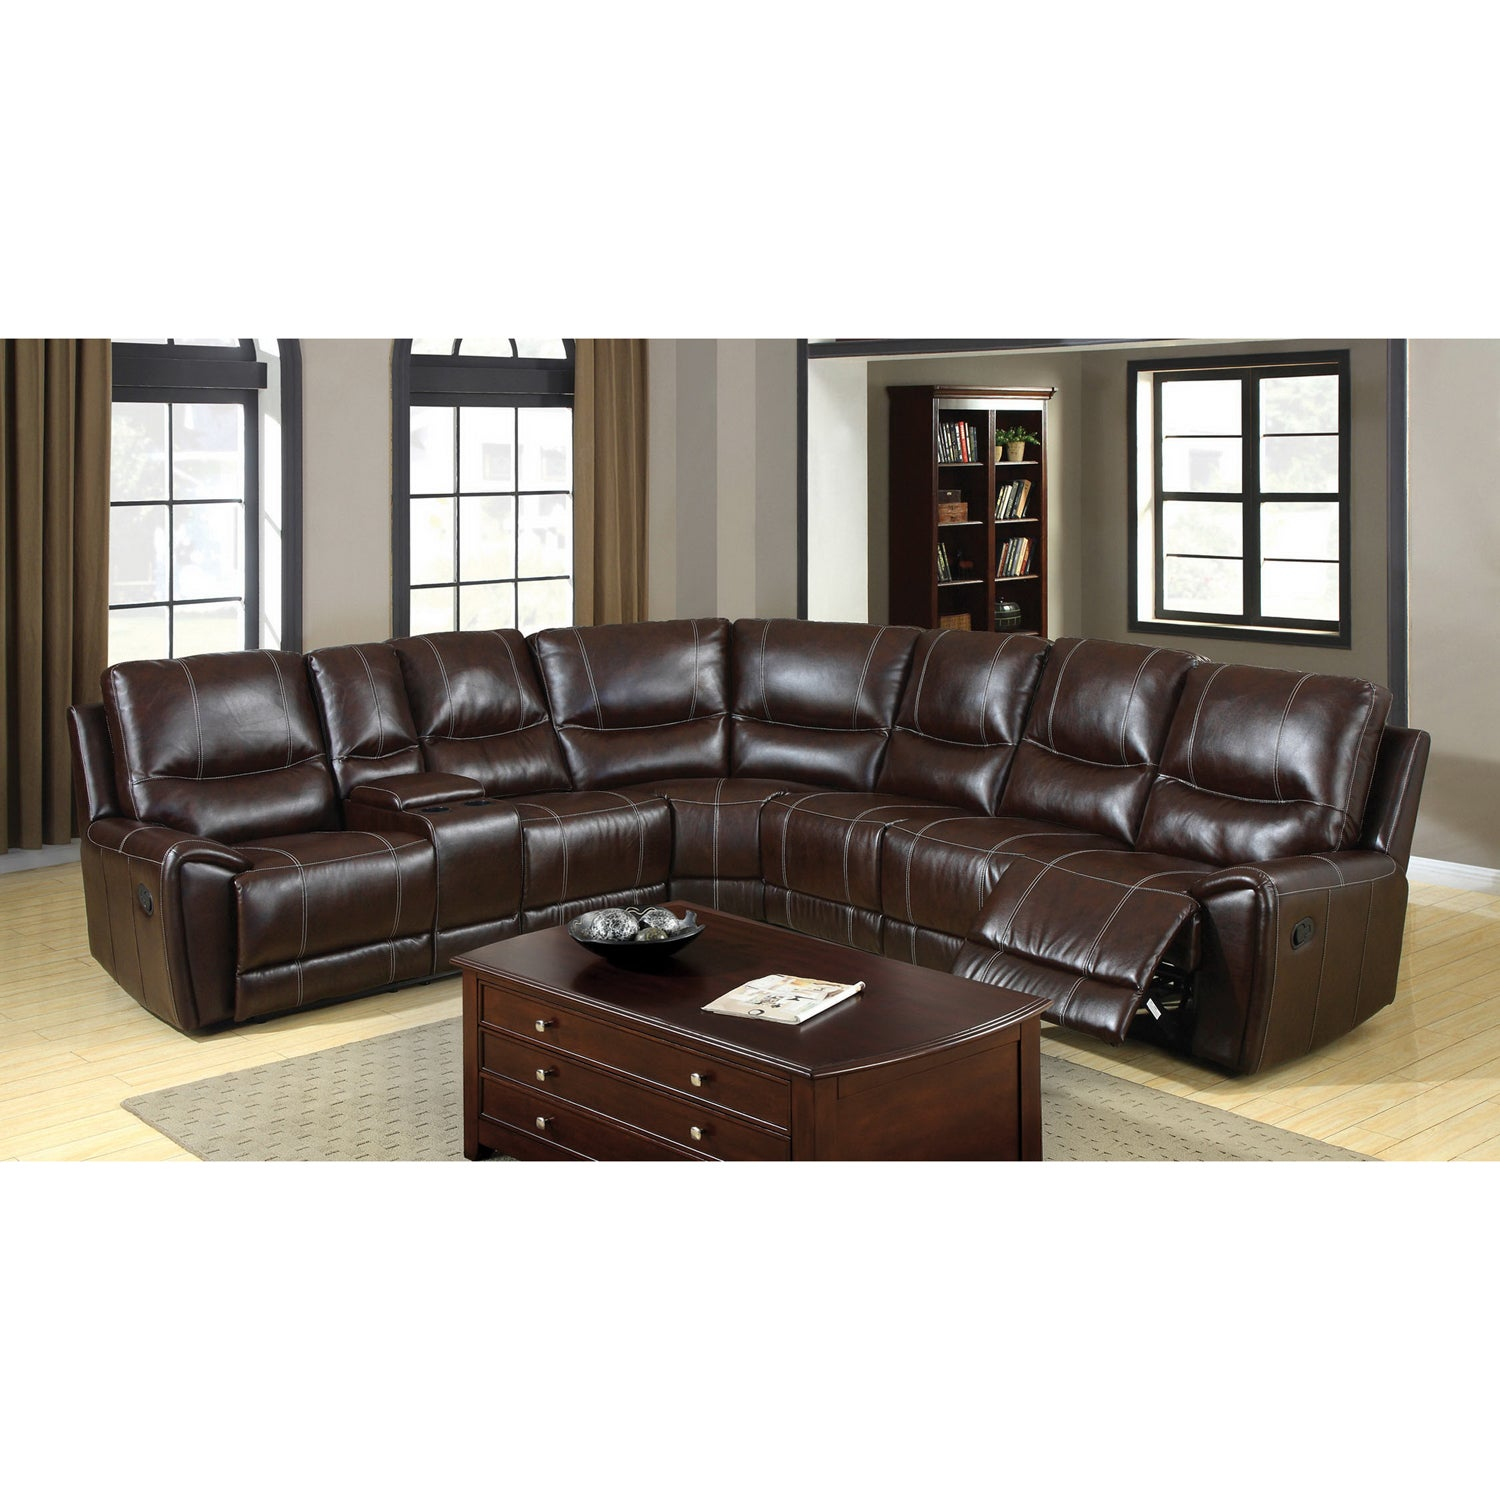 Dotti Contemporary Brown 4 Piece Sectional Set By Foa